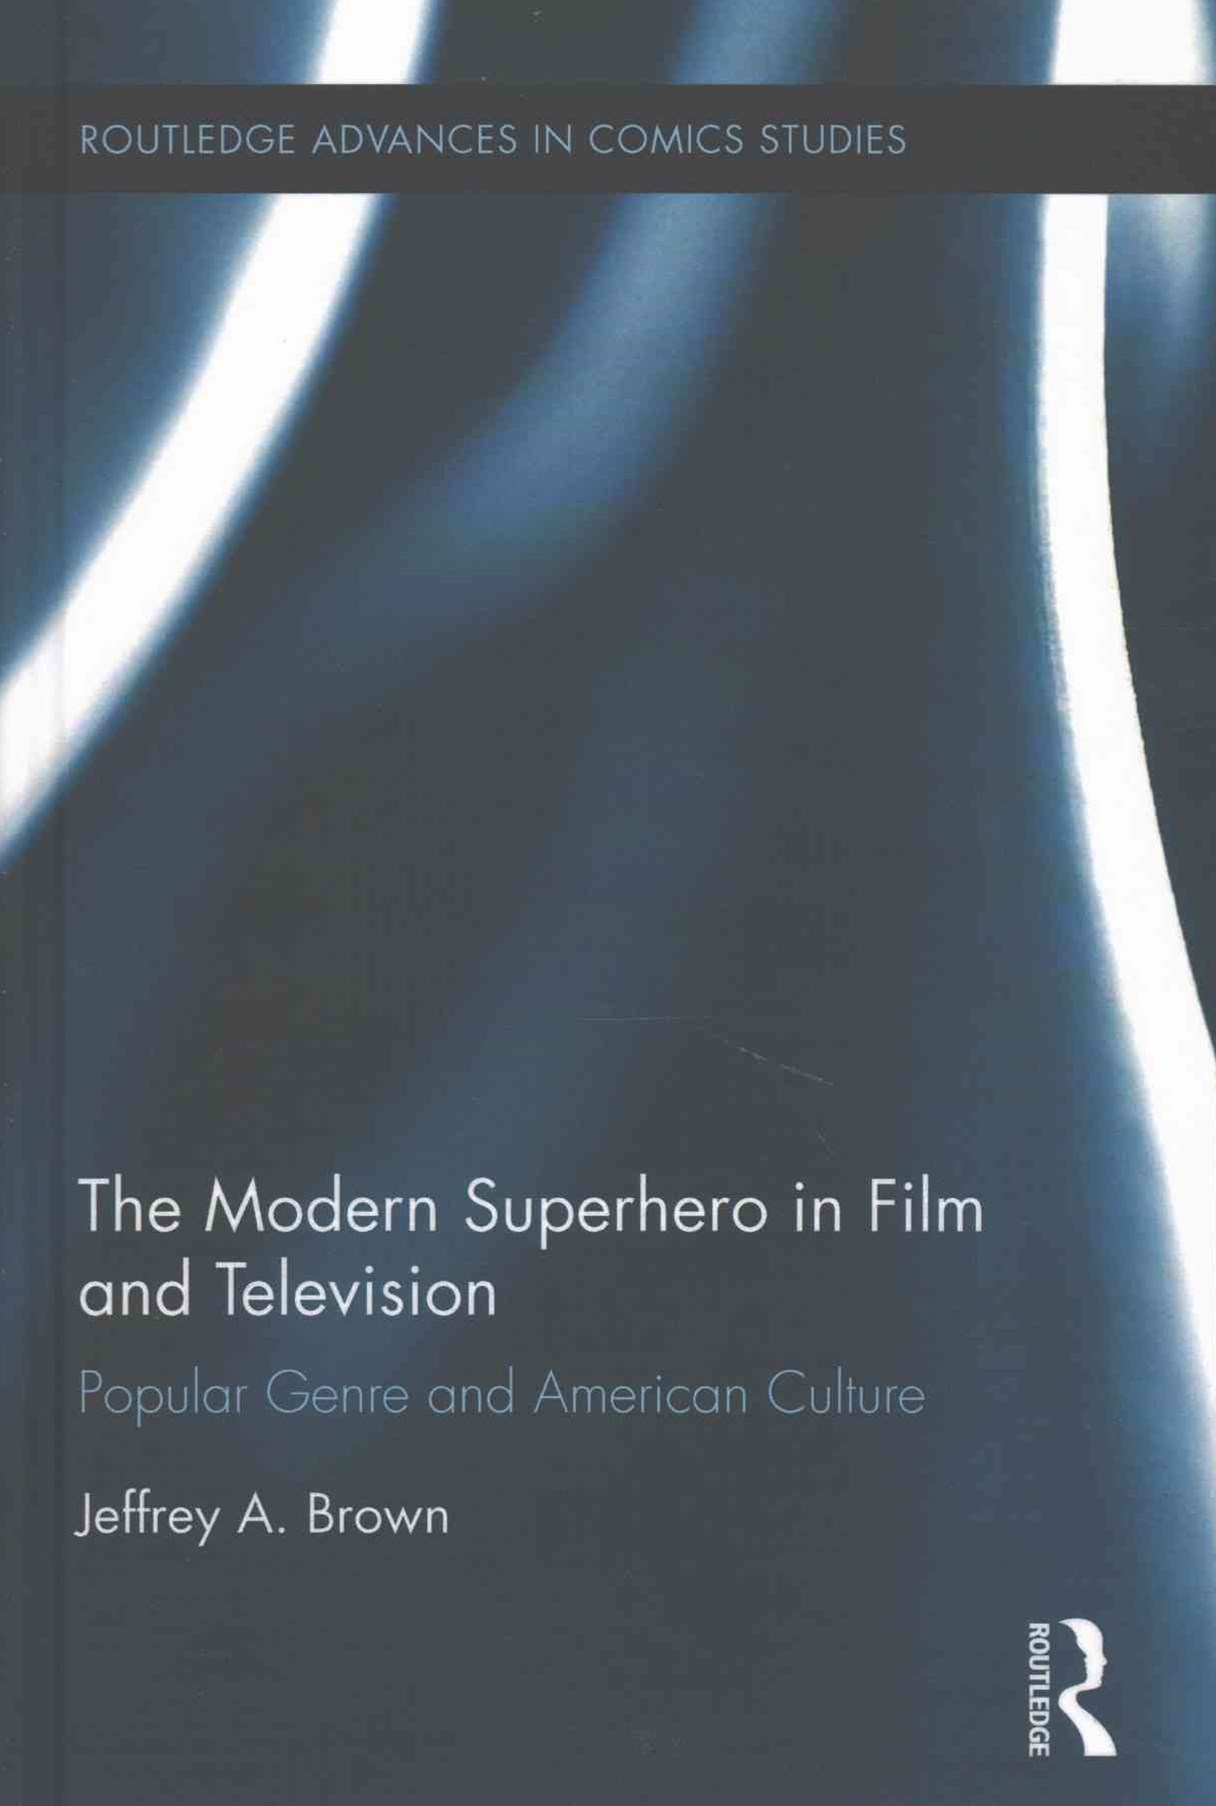 Modern Superhero in Film and Television